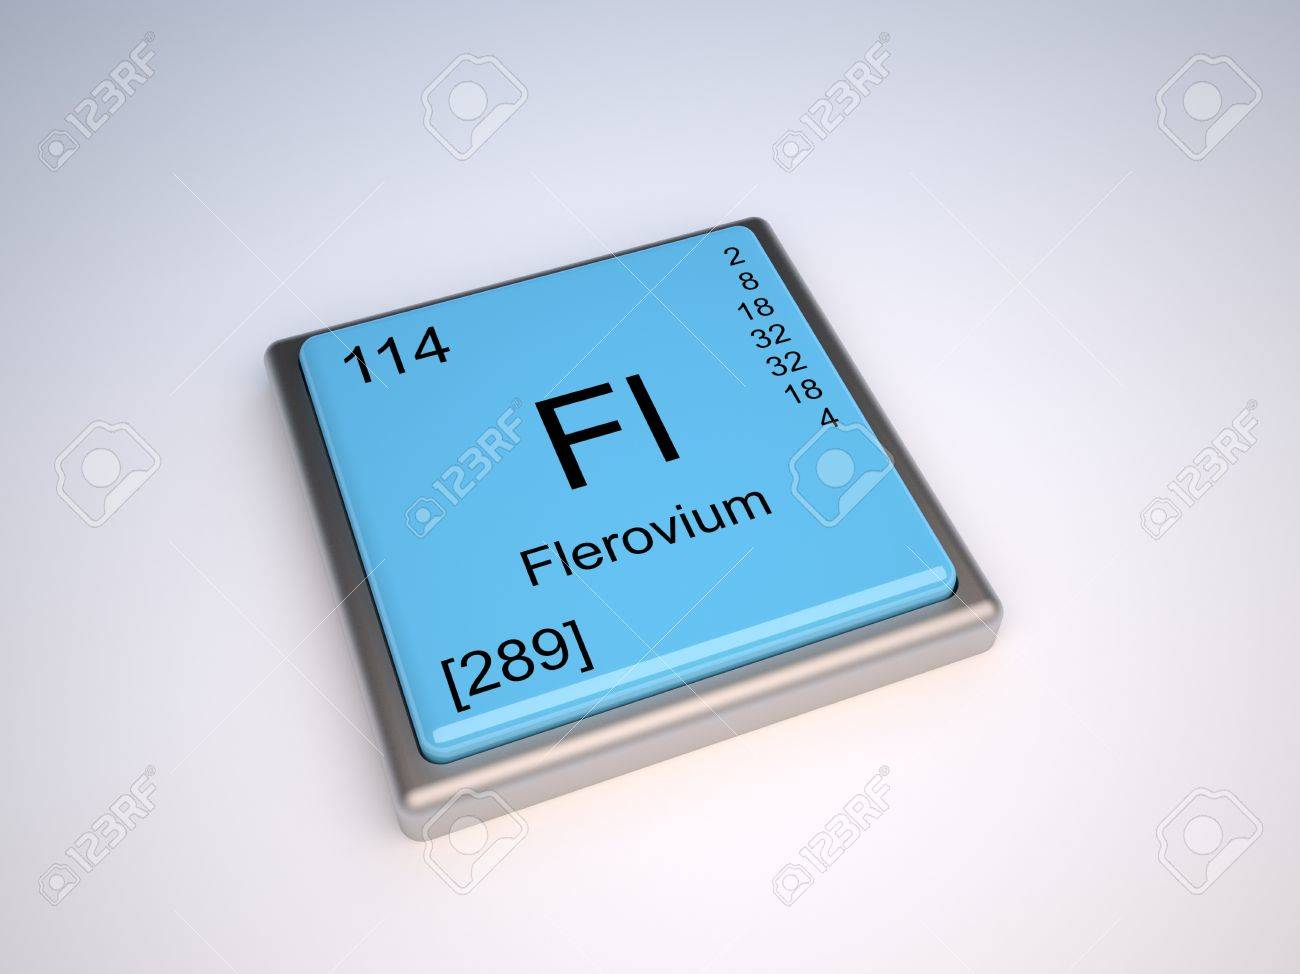 Framed periodic table gallery periodic table images periodic table indium images periodic table images 114 element periodic table images periodic table images periodic gamestrikefo Images